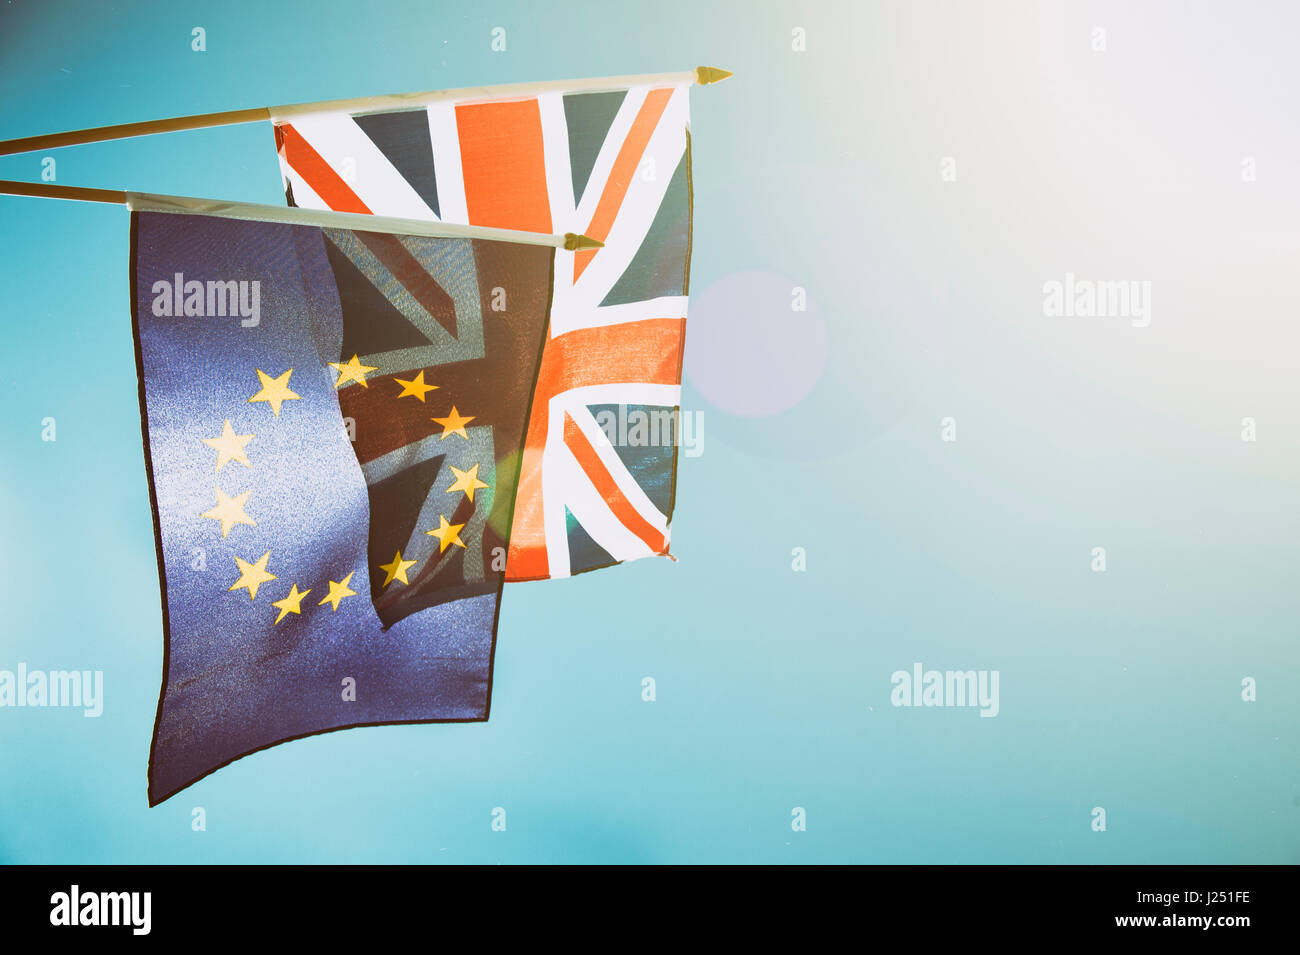 EU European Union and UK United Kingdom flags flying together in bright blue sky on the dawn of a new day of cooperation - Stock Image